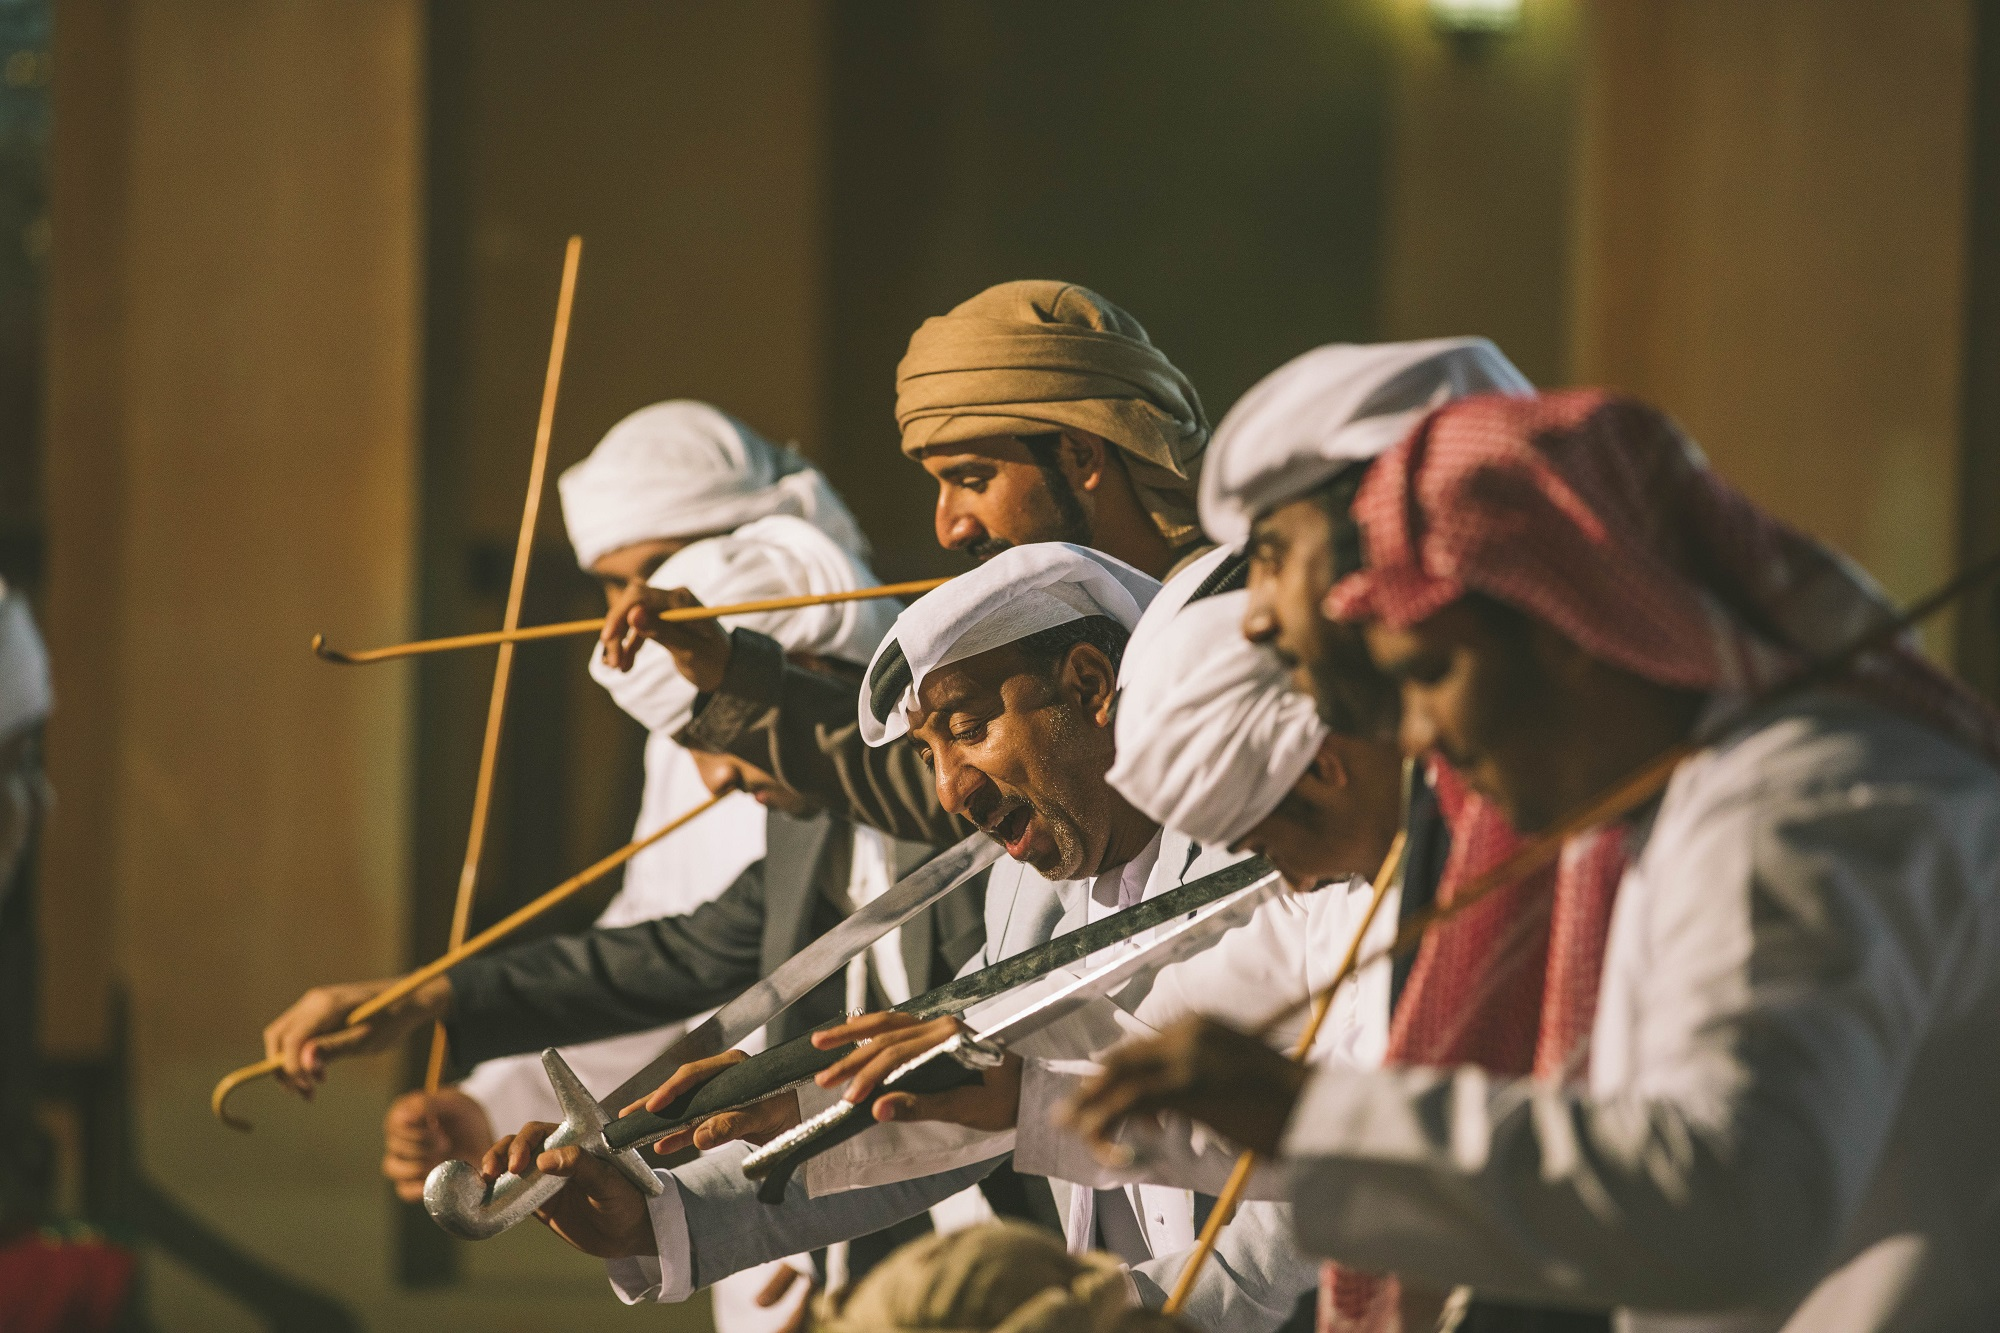 visitors experience uae heritage and diverse traditions in al ain palace museum2